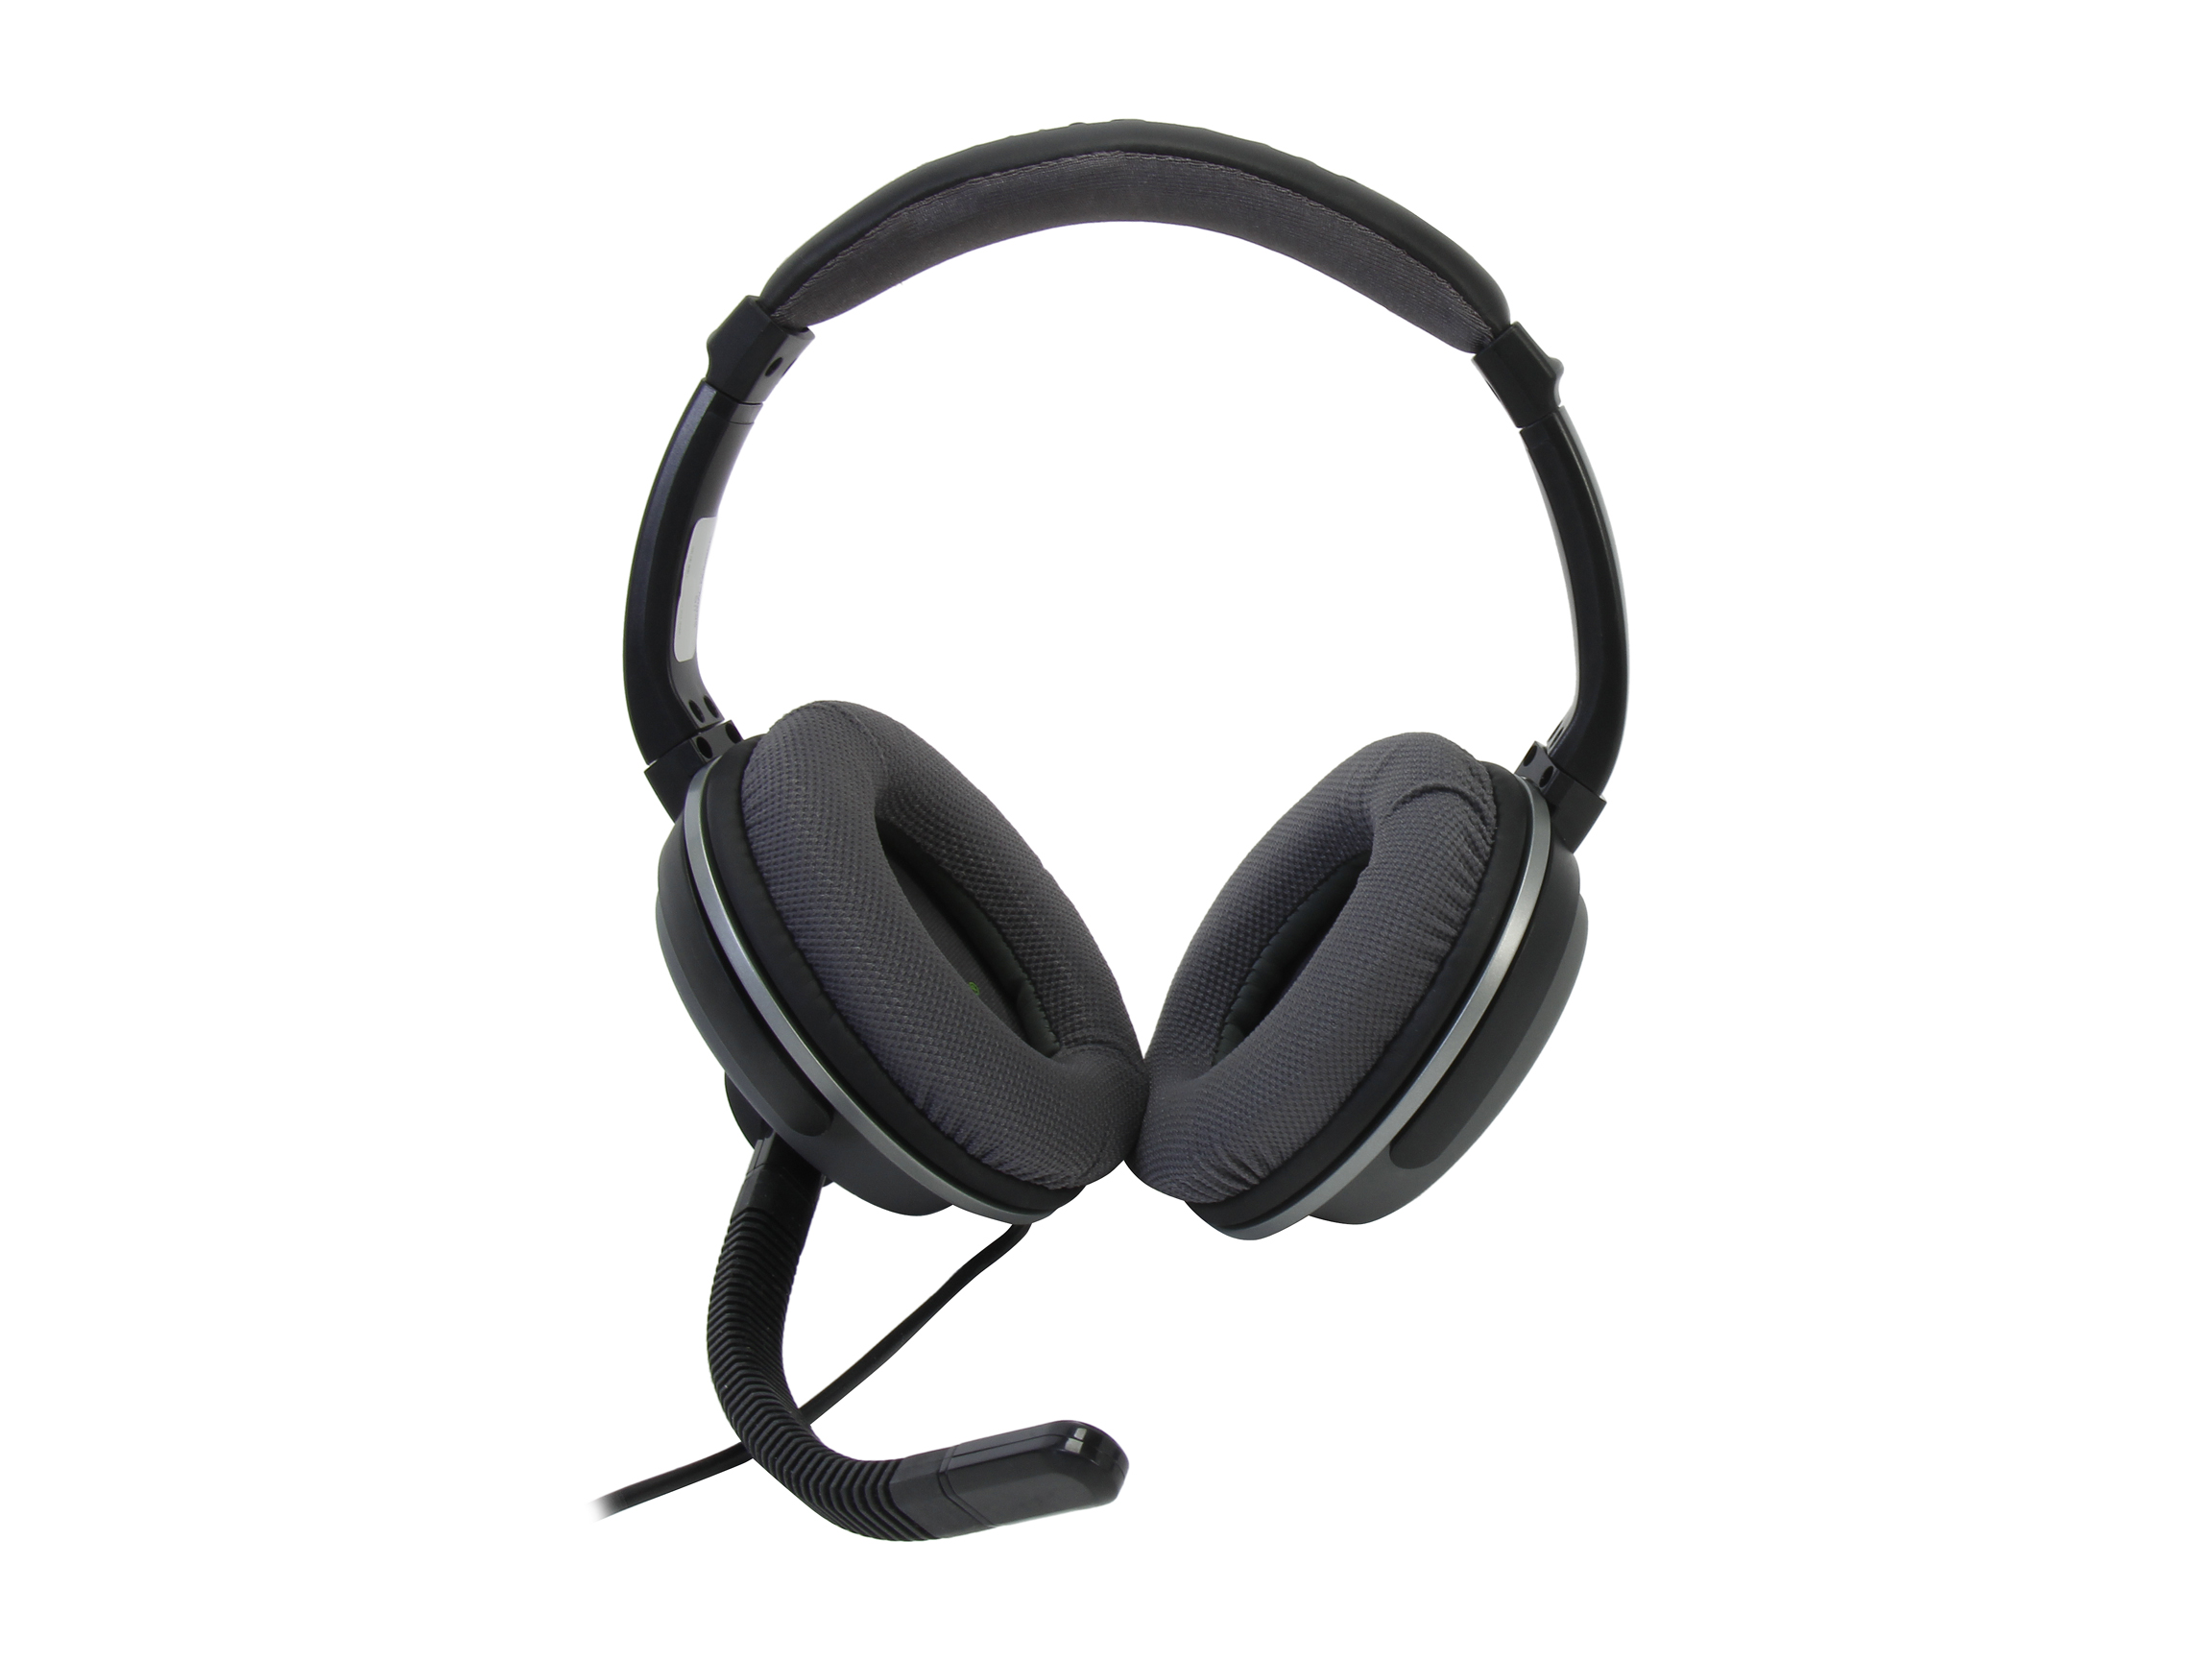 Refurbished: Turtle Beach Call of Duty Modern Warfare 3 Ear Force Foxtrot Headset For PS4/PS3/Xbox360/PC/MAC